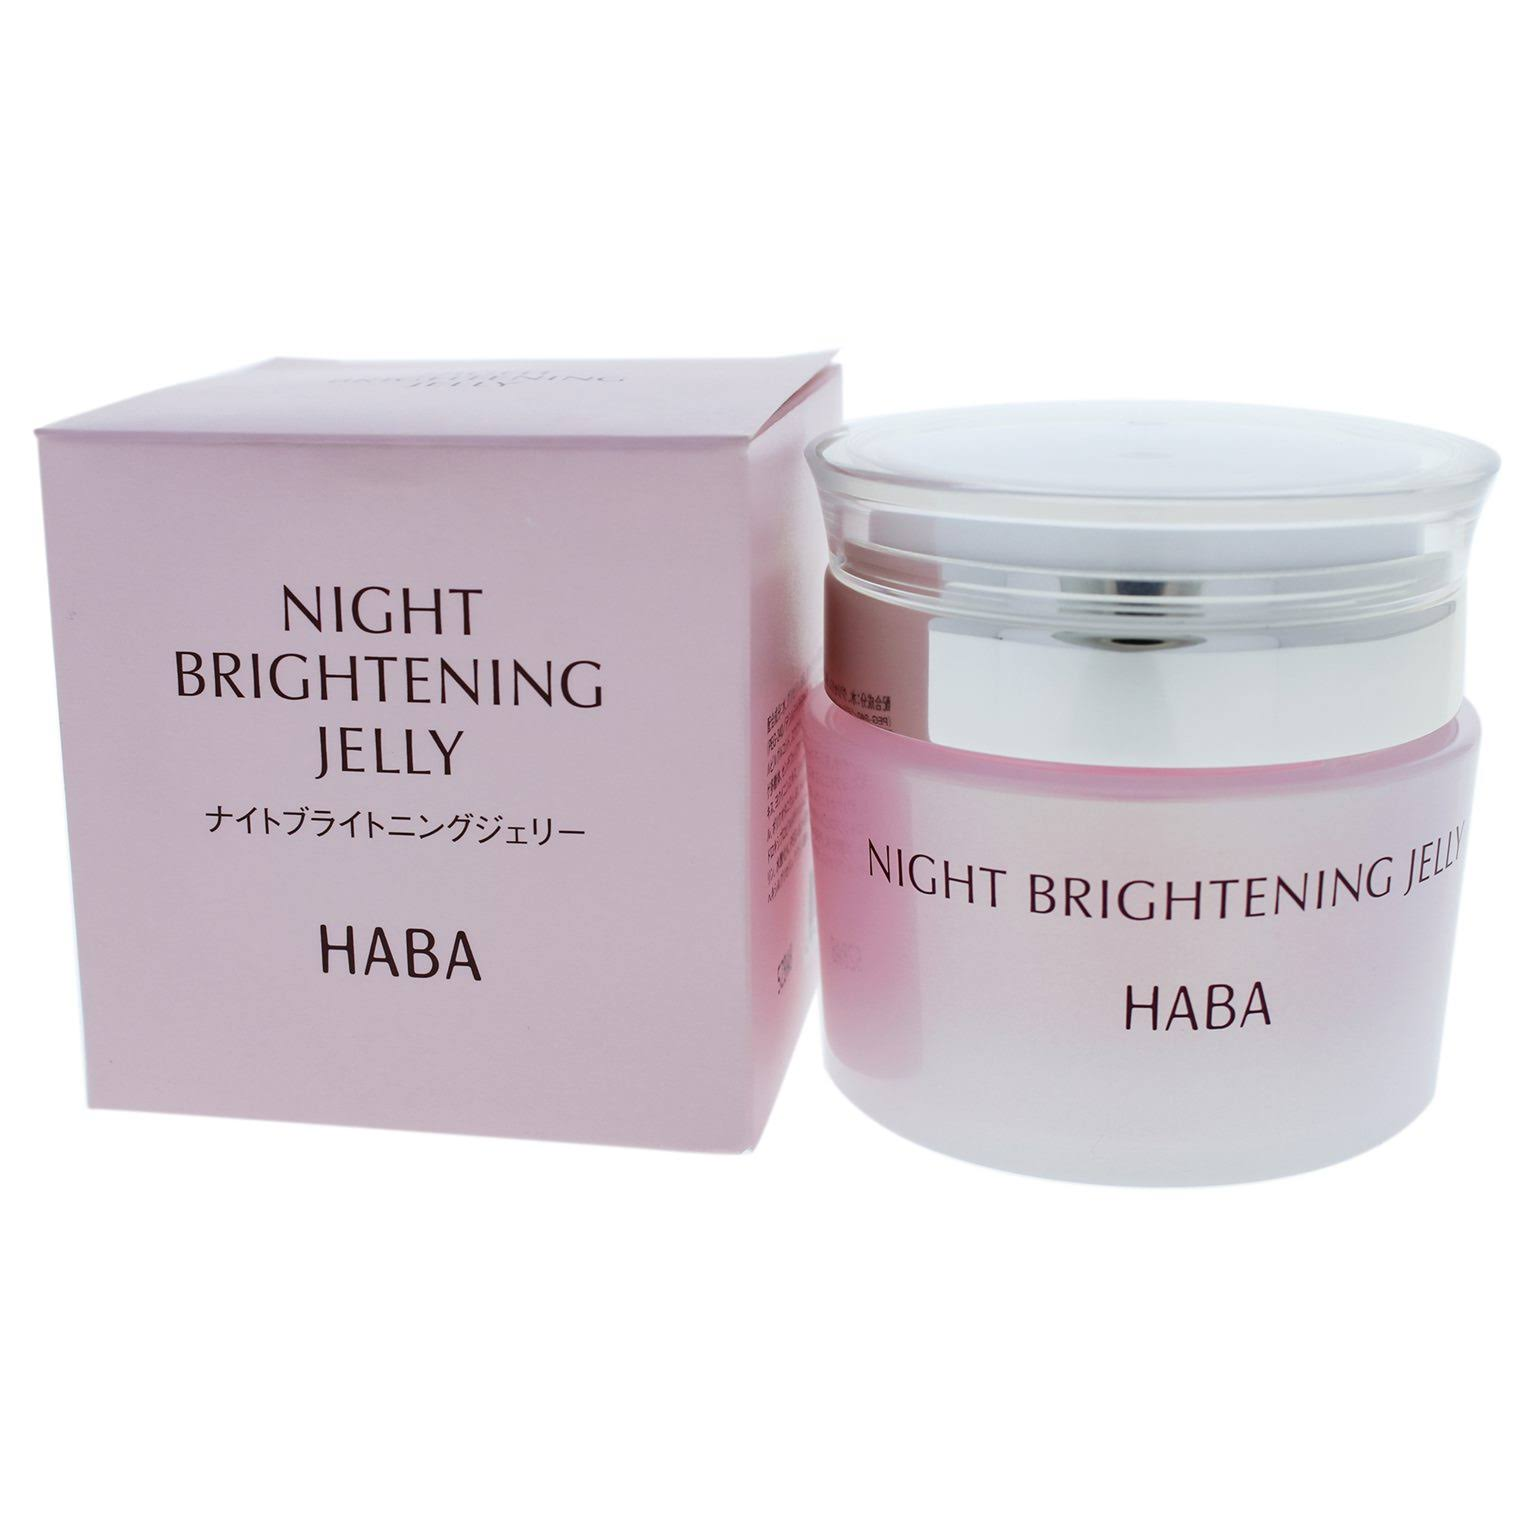 HABA Night Brightening Jelly - 50g